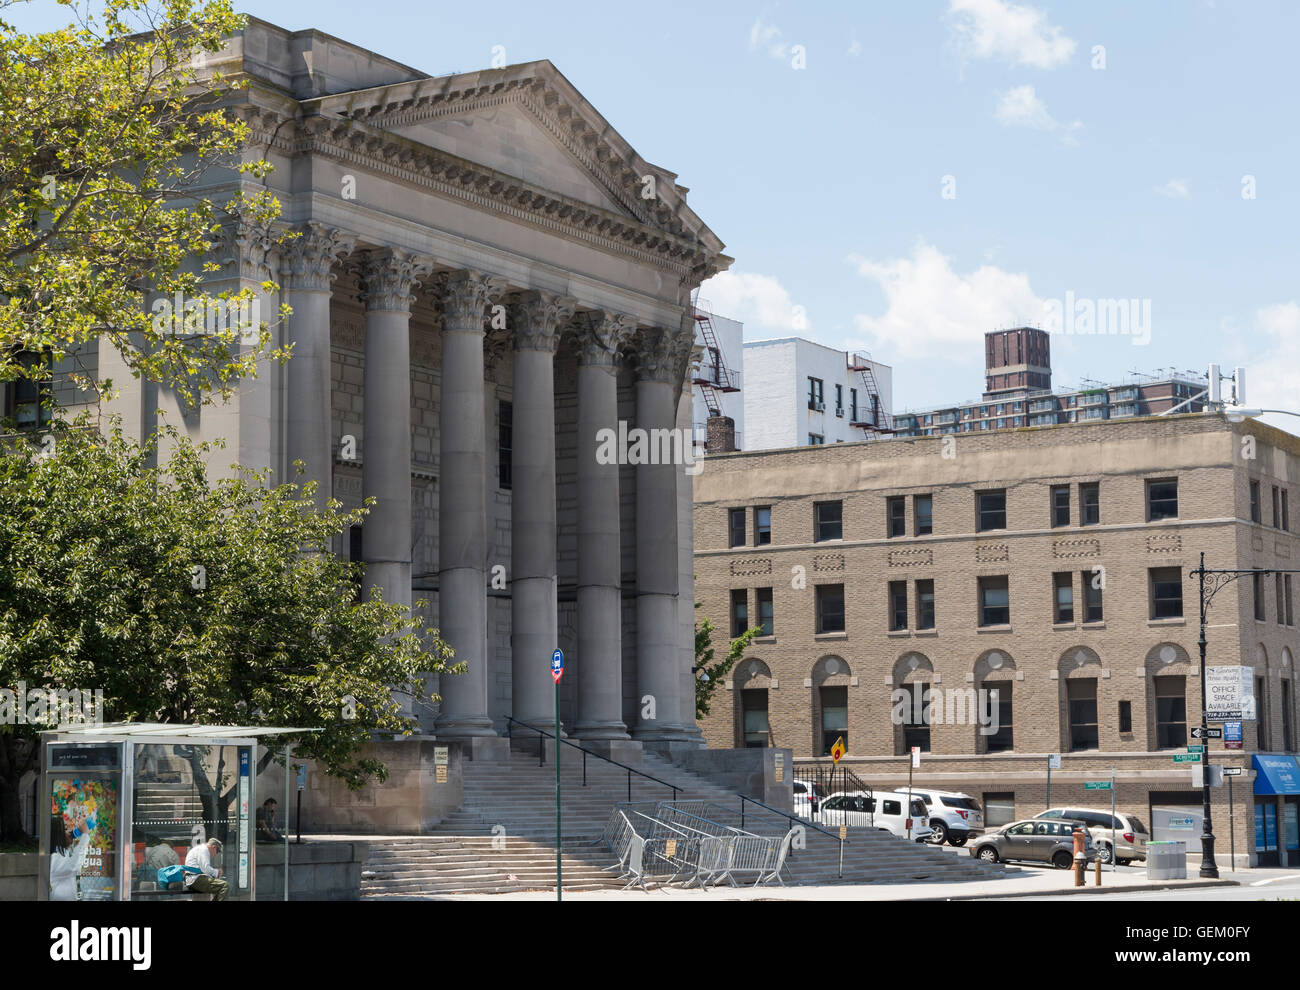 Richmond County Courthouse landmarked building on Richmond Terrace, Staten Island, New York City, New York. - Stock Image